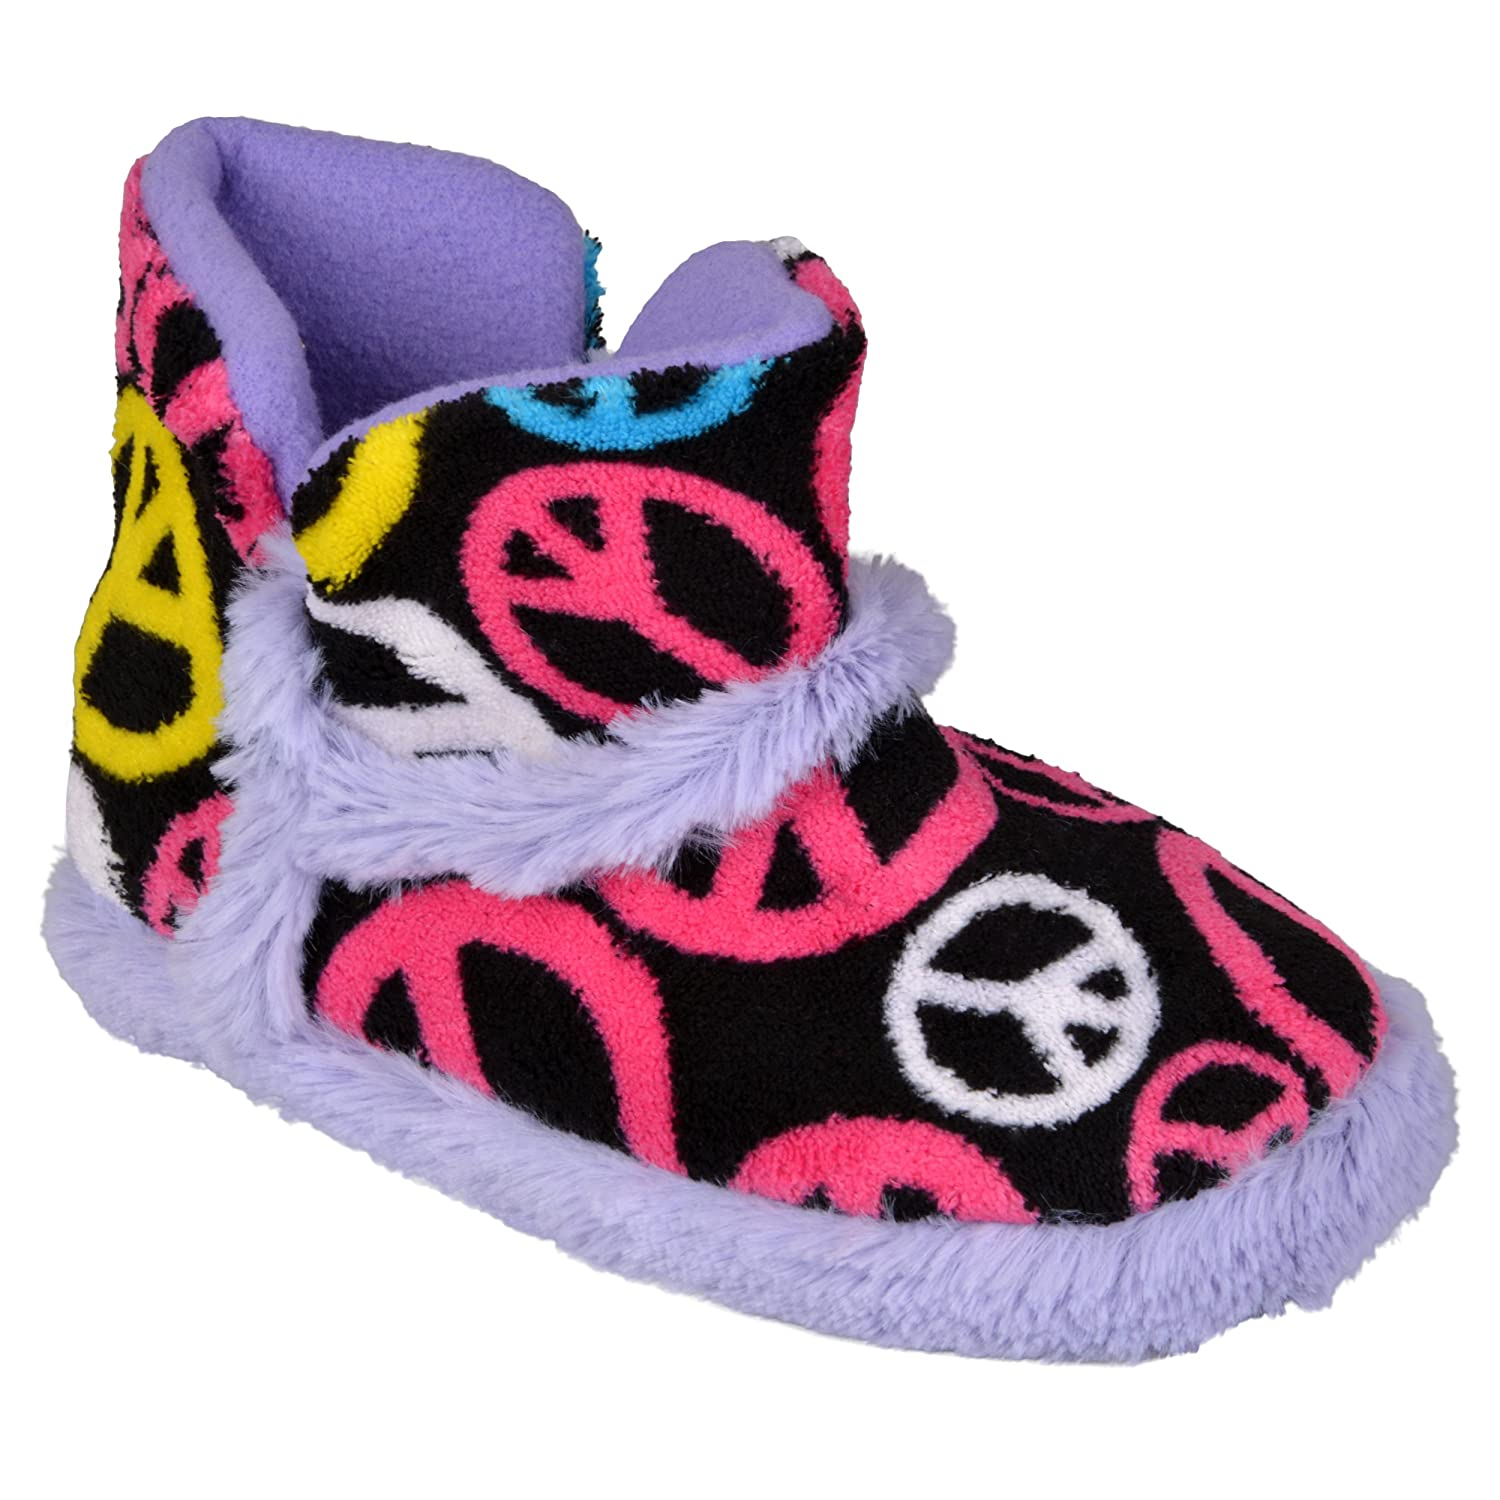 Brinley Co. Kids Peace Design Ankle Bootie Slipper co e